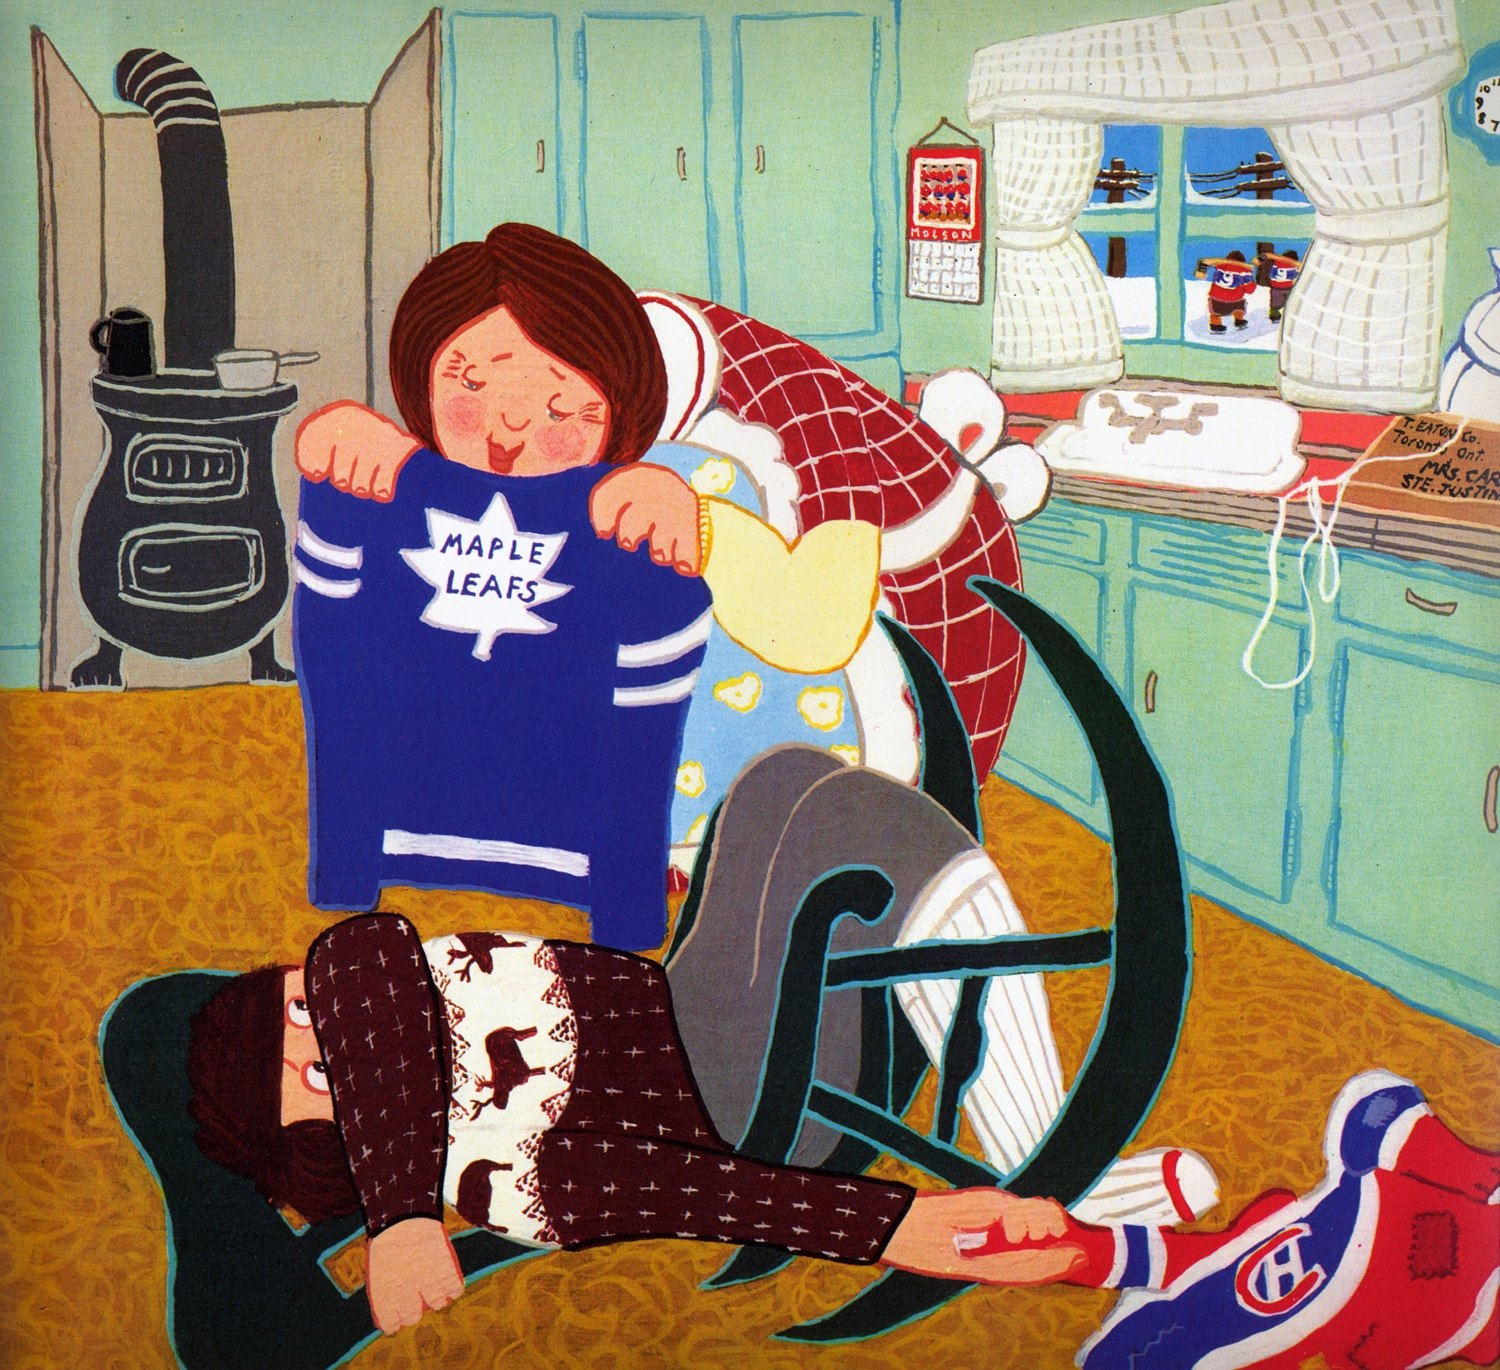 http://thesoundofpop1.files.wordpress.com/2012/04/illustration-by-sheldon-cohen-from-the-hockey-sweater-written-by-roch-carrier.jpg